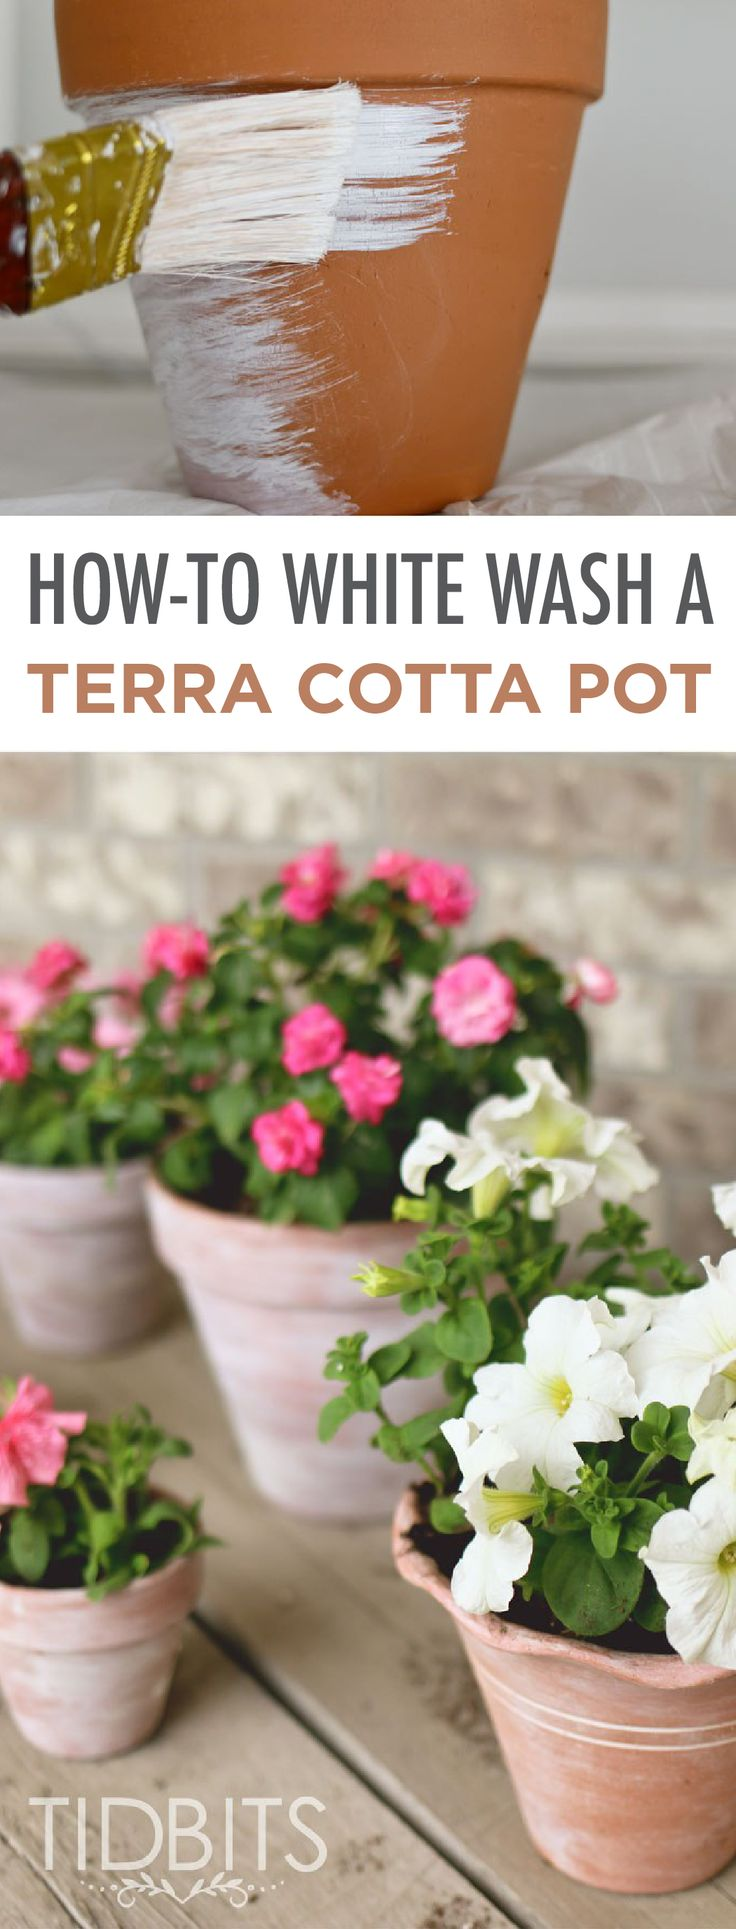 Blogger Tidbits shows you how-to whitewash terracotta pots for a simple and easy, yet effective, front porch makeover. The best part about this DIY project idea is that it uses supplies you already have on hand!